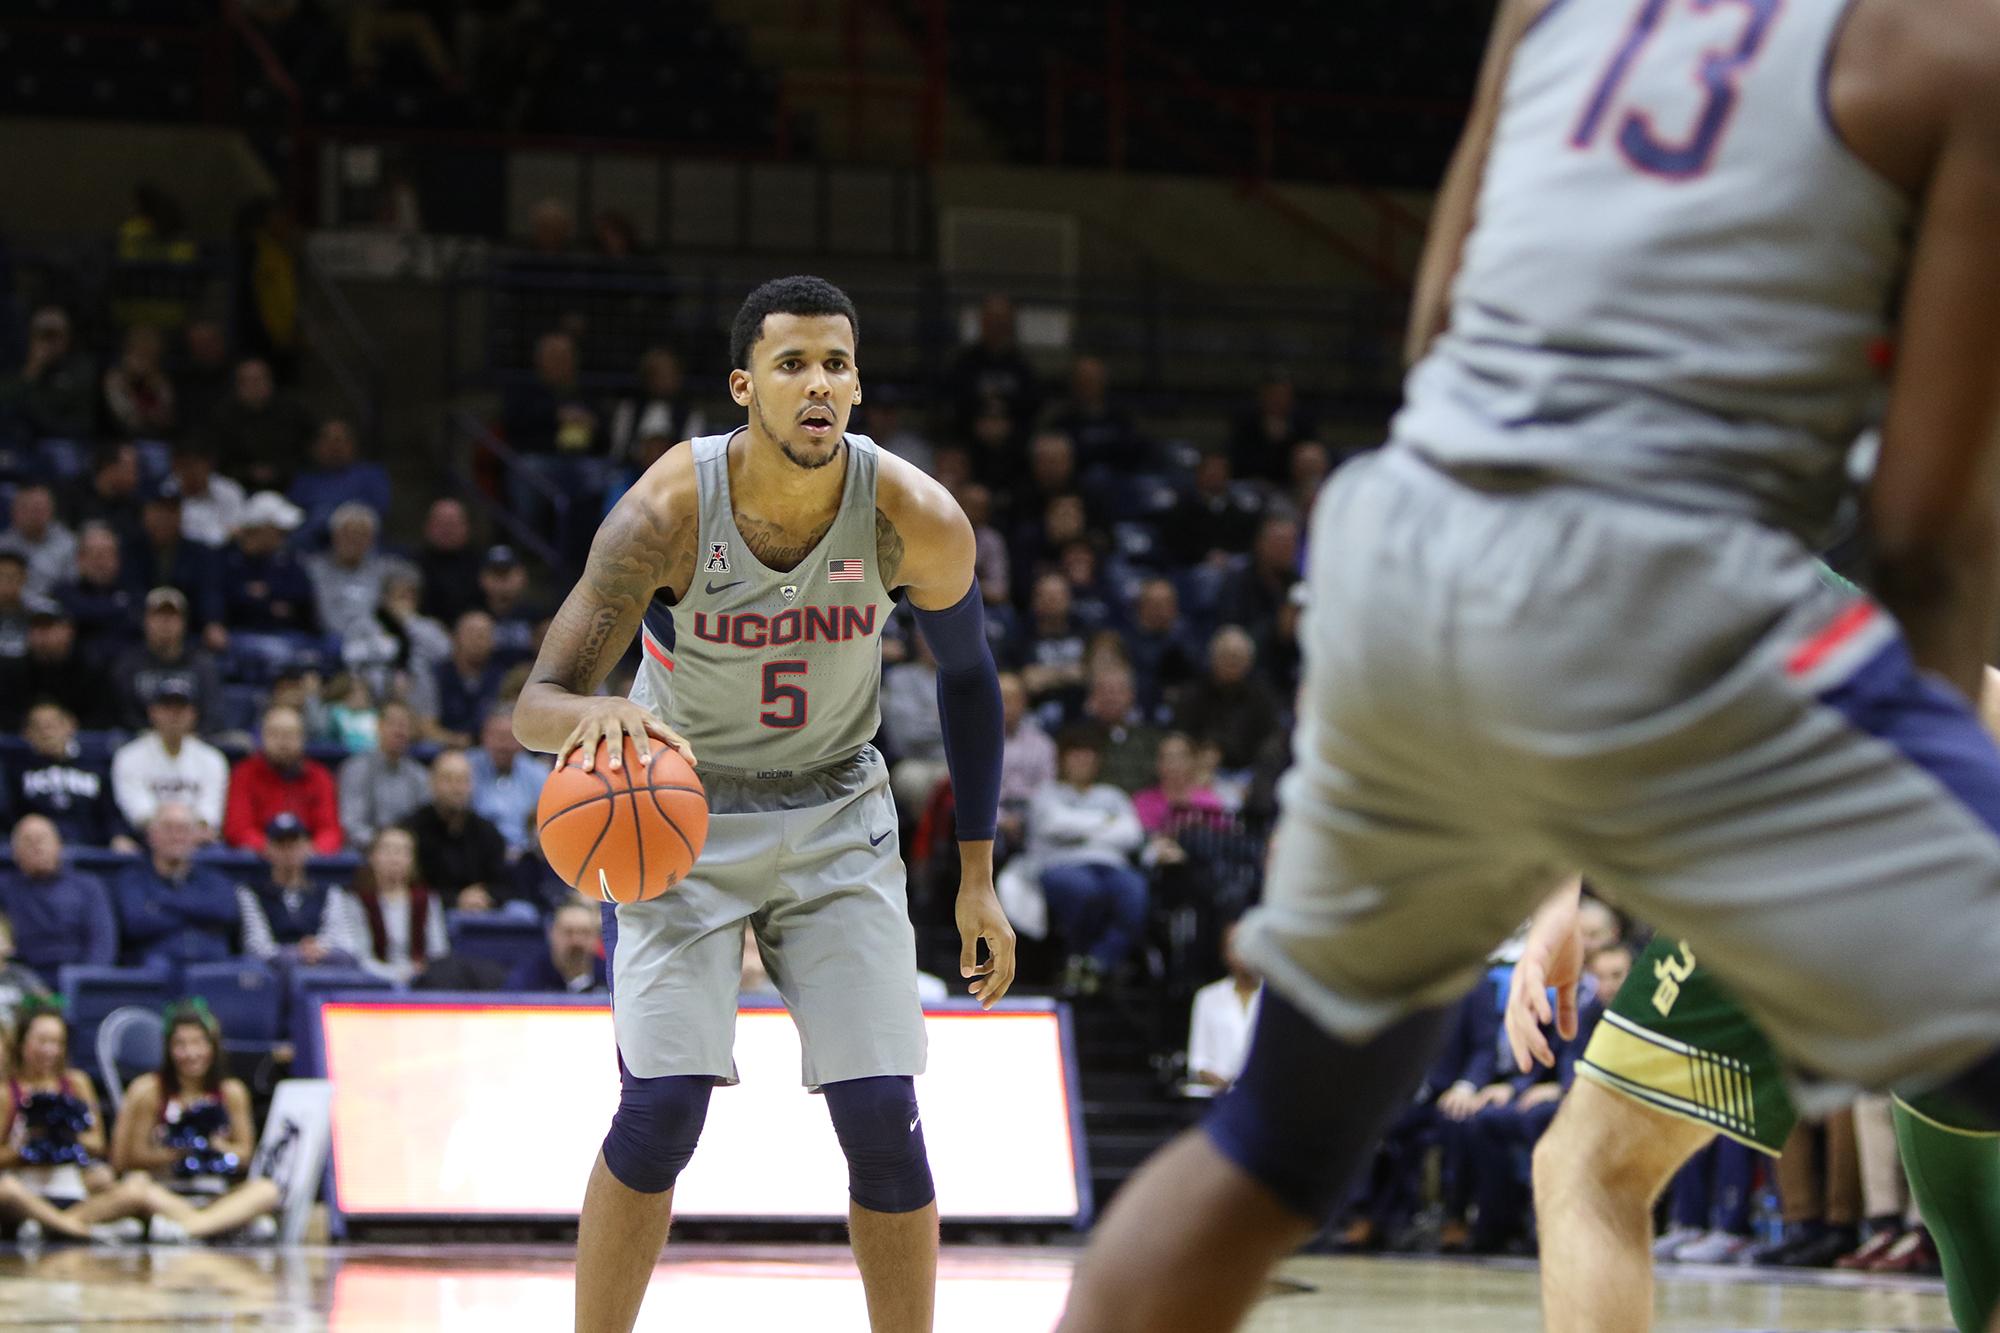 The UConn men's basketball team defeated USF 97-51 on Wednesday, Feb. 8, 2017  at Gampel Pavilion. Wednesday night, the Huskies suffered a close loss to Houston 70-75.  (Jackson Haigis/ The Daily Campus)